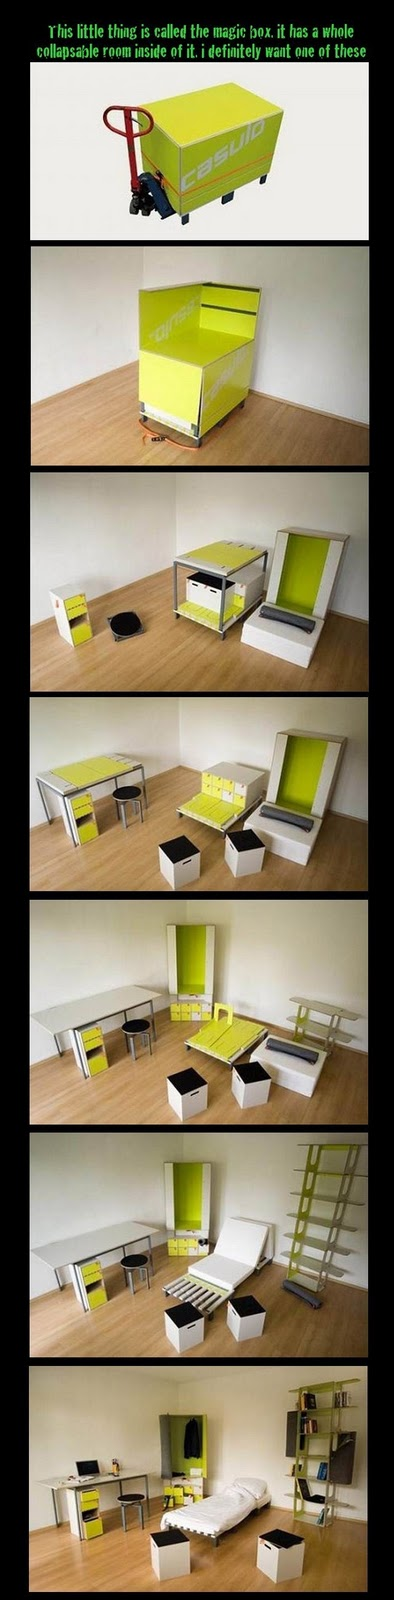 Pixelhostel casulo room in a box by marcel krings - Room in a box casulo ...